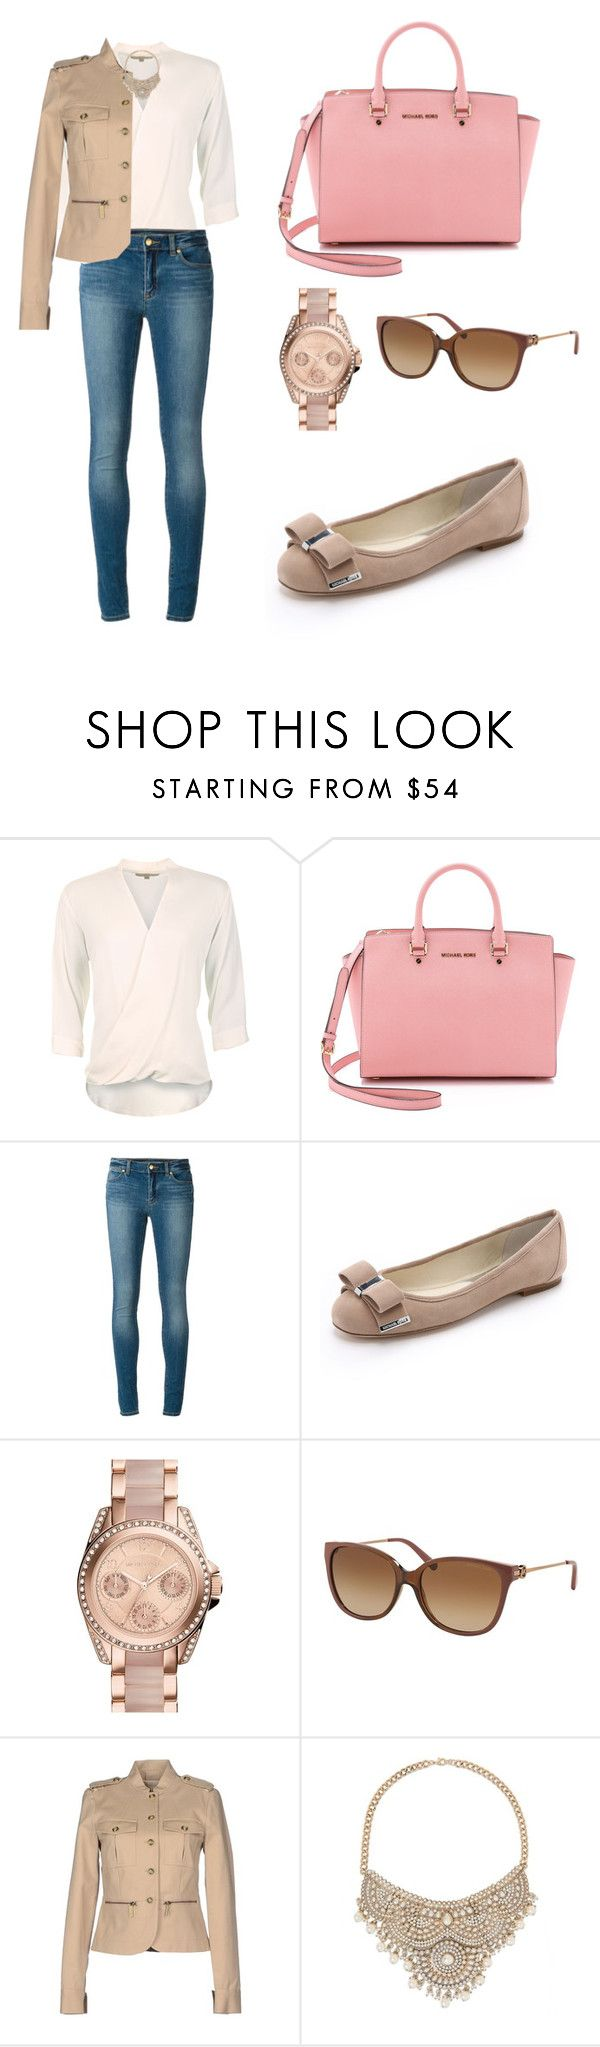 """Pink Michael Kors"" by tania-alves ❤ liked on Polyvore featuring мода, MICHAEL Michael Kors и Bebe"